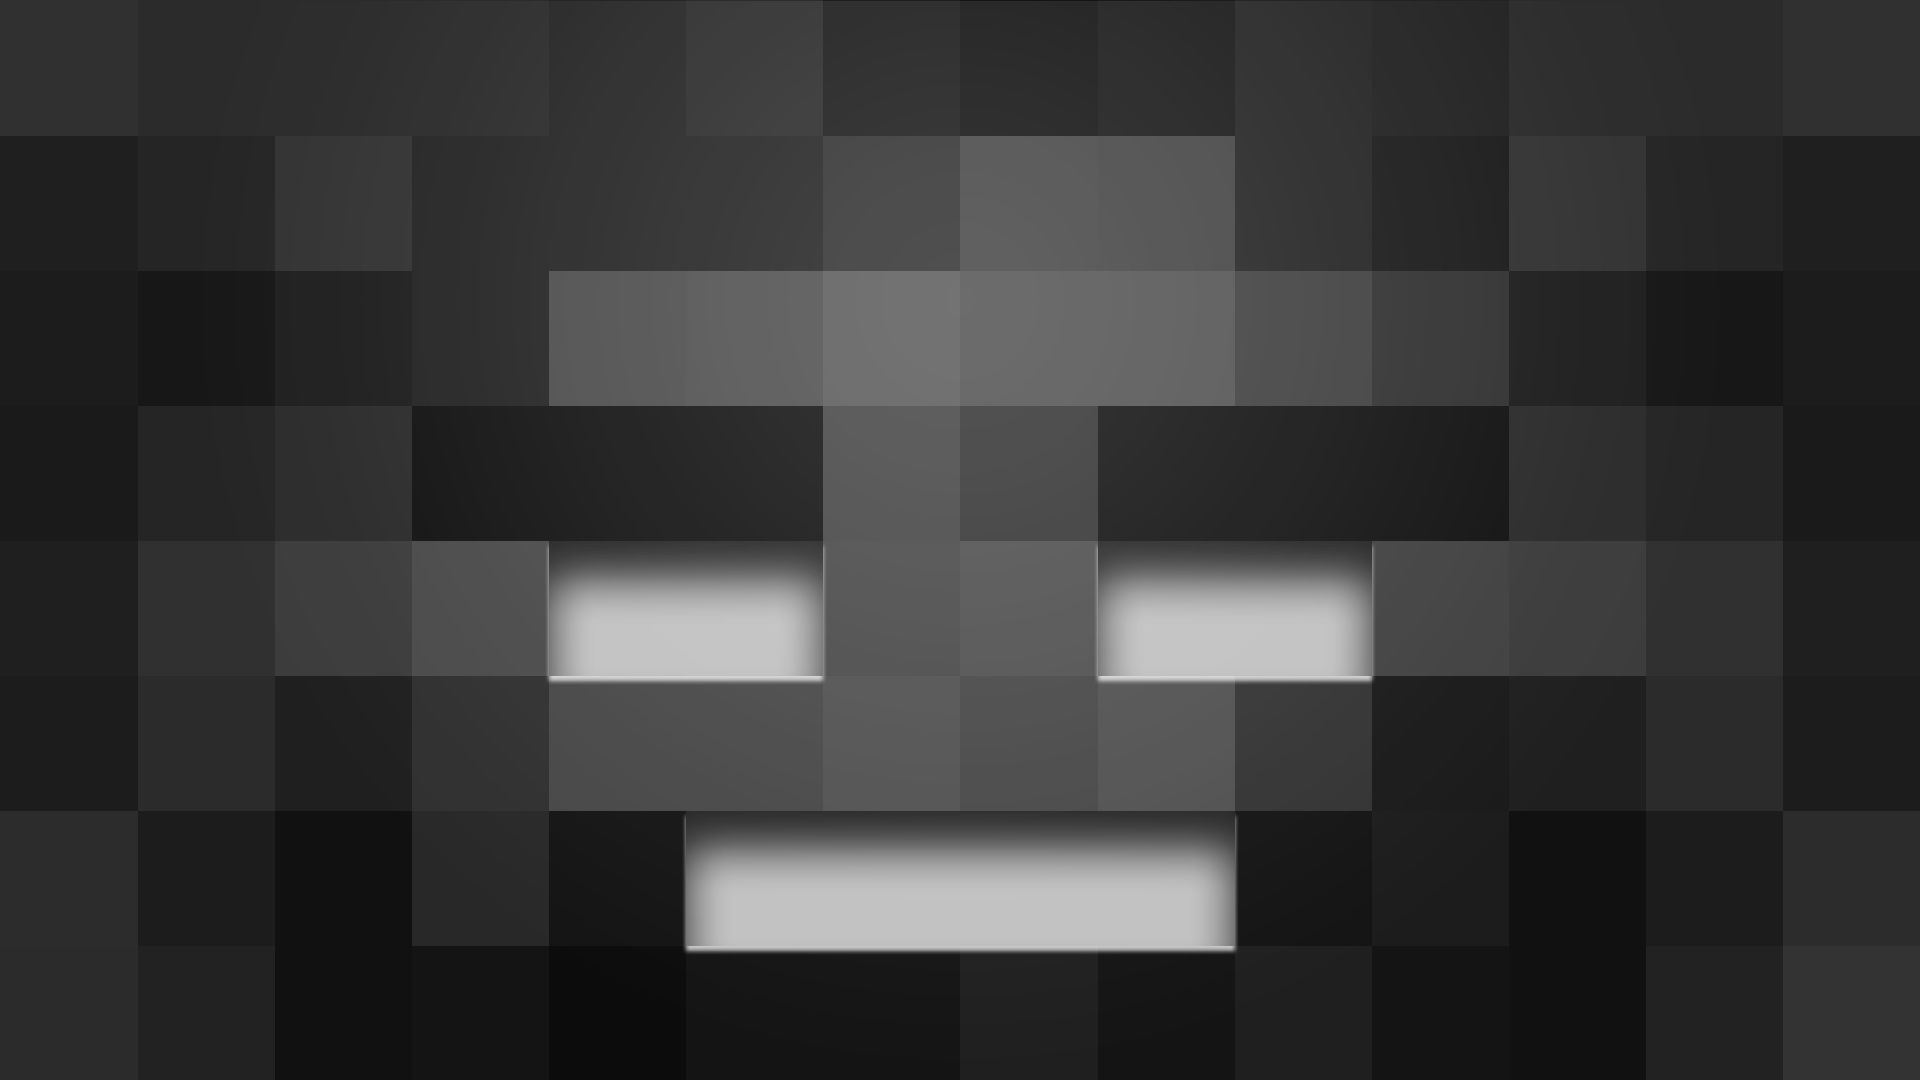 Hd wallpaper editor - Minecraft Mob Wither Skeleton Face Hd Wallpaper Minecraft